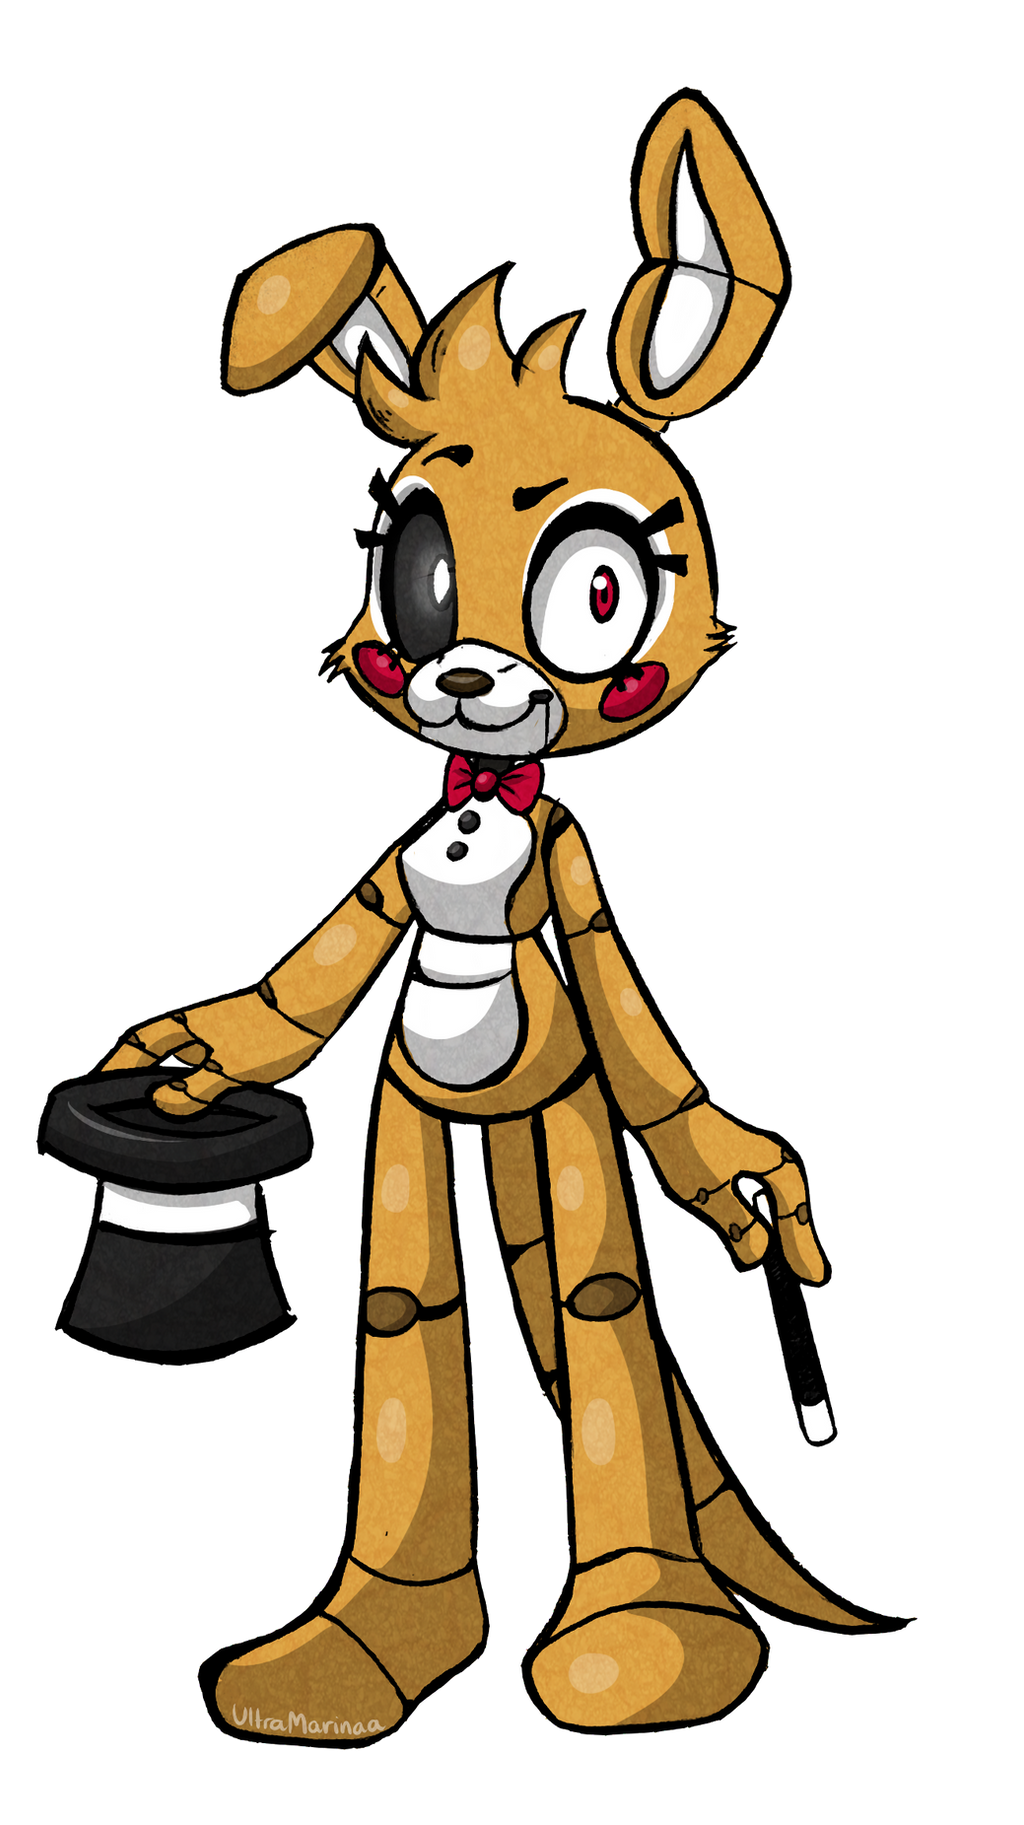 Fnaf Oc Karo The Kangaroo By Ultramarinaa On Deviantart